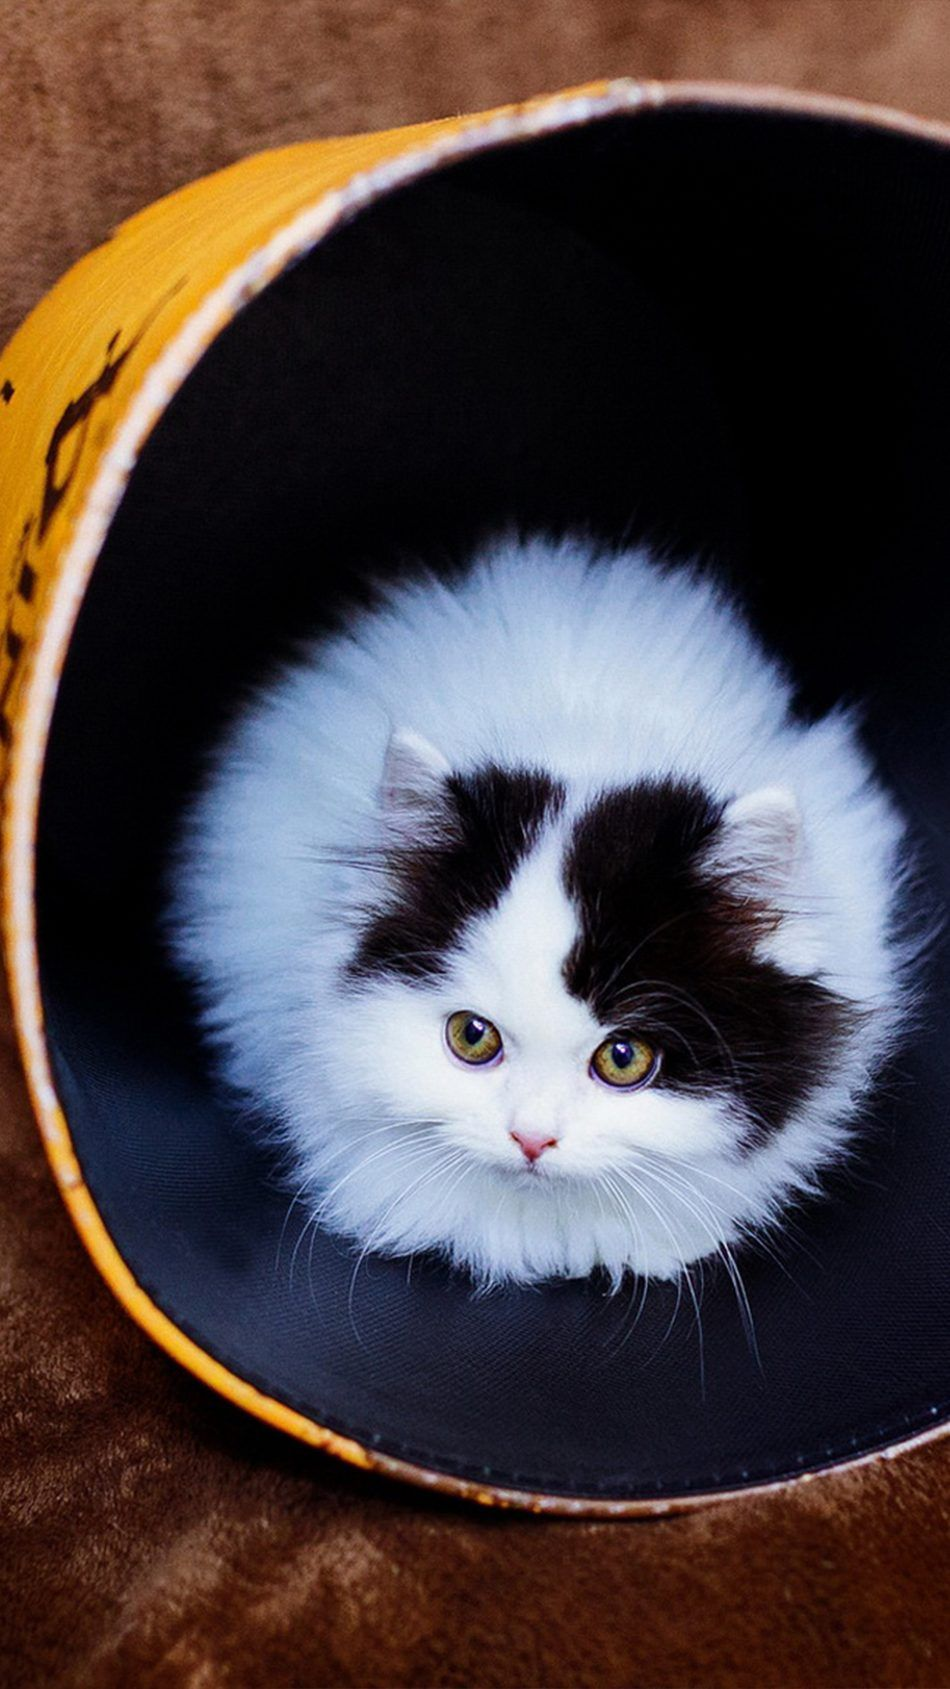 Tiny Cat Big Cup 4k Ultra Hd Mobile Wallpaper Tiny Cats Cats Cute Baby Animals